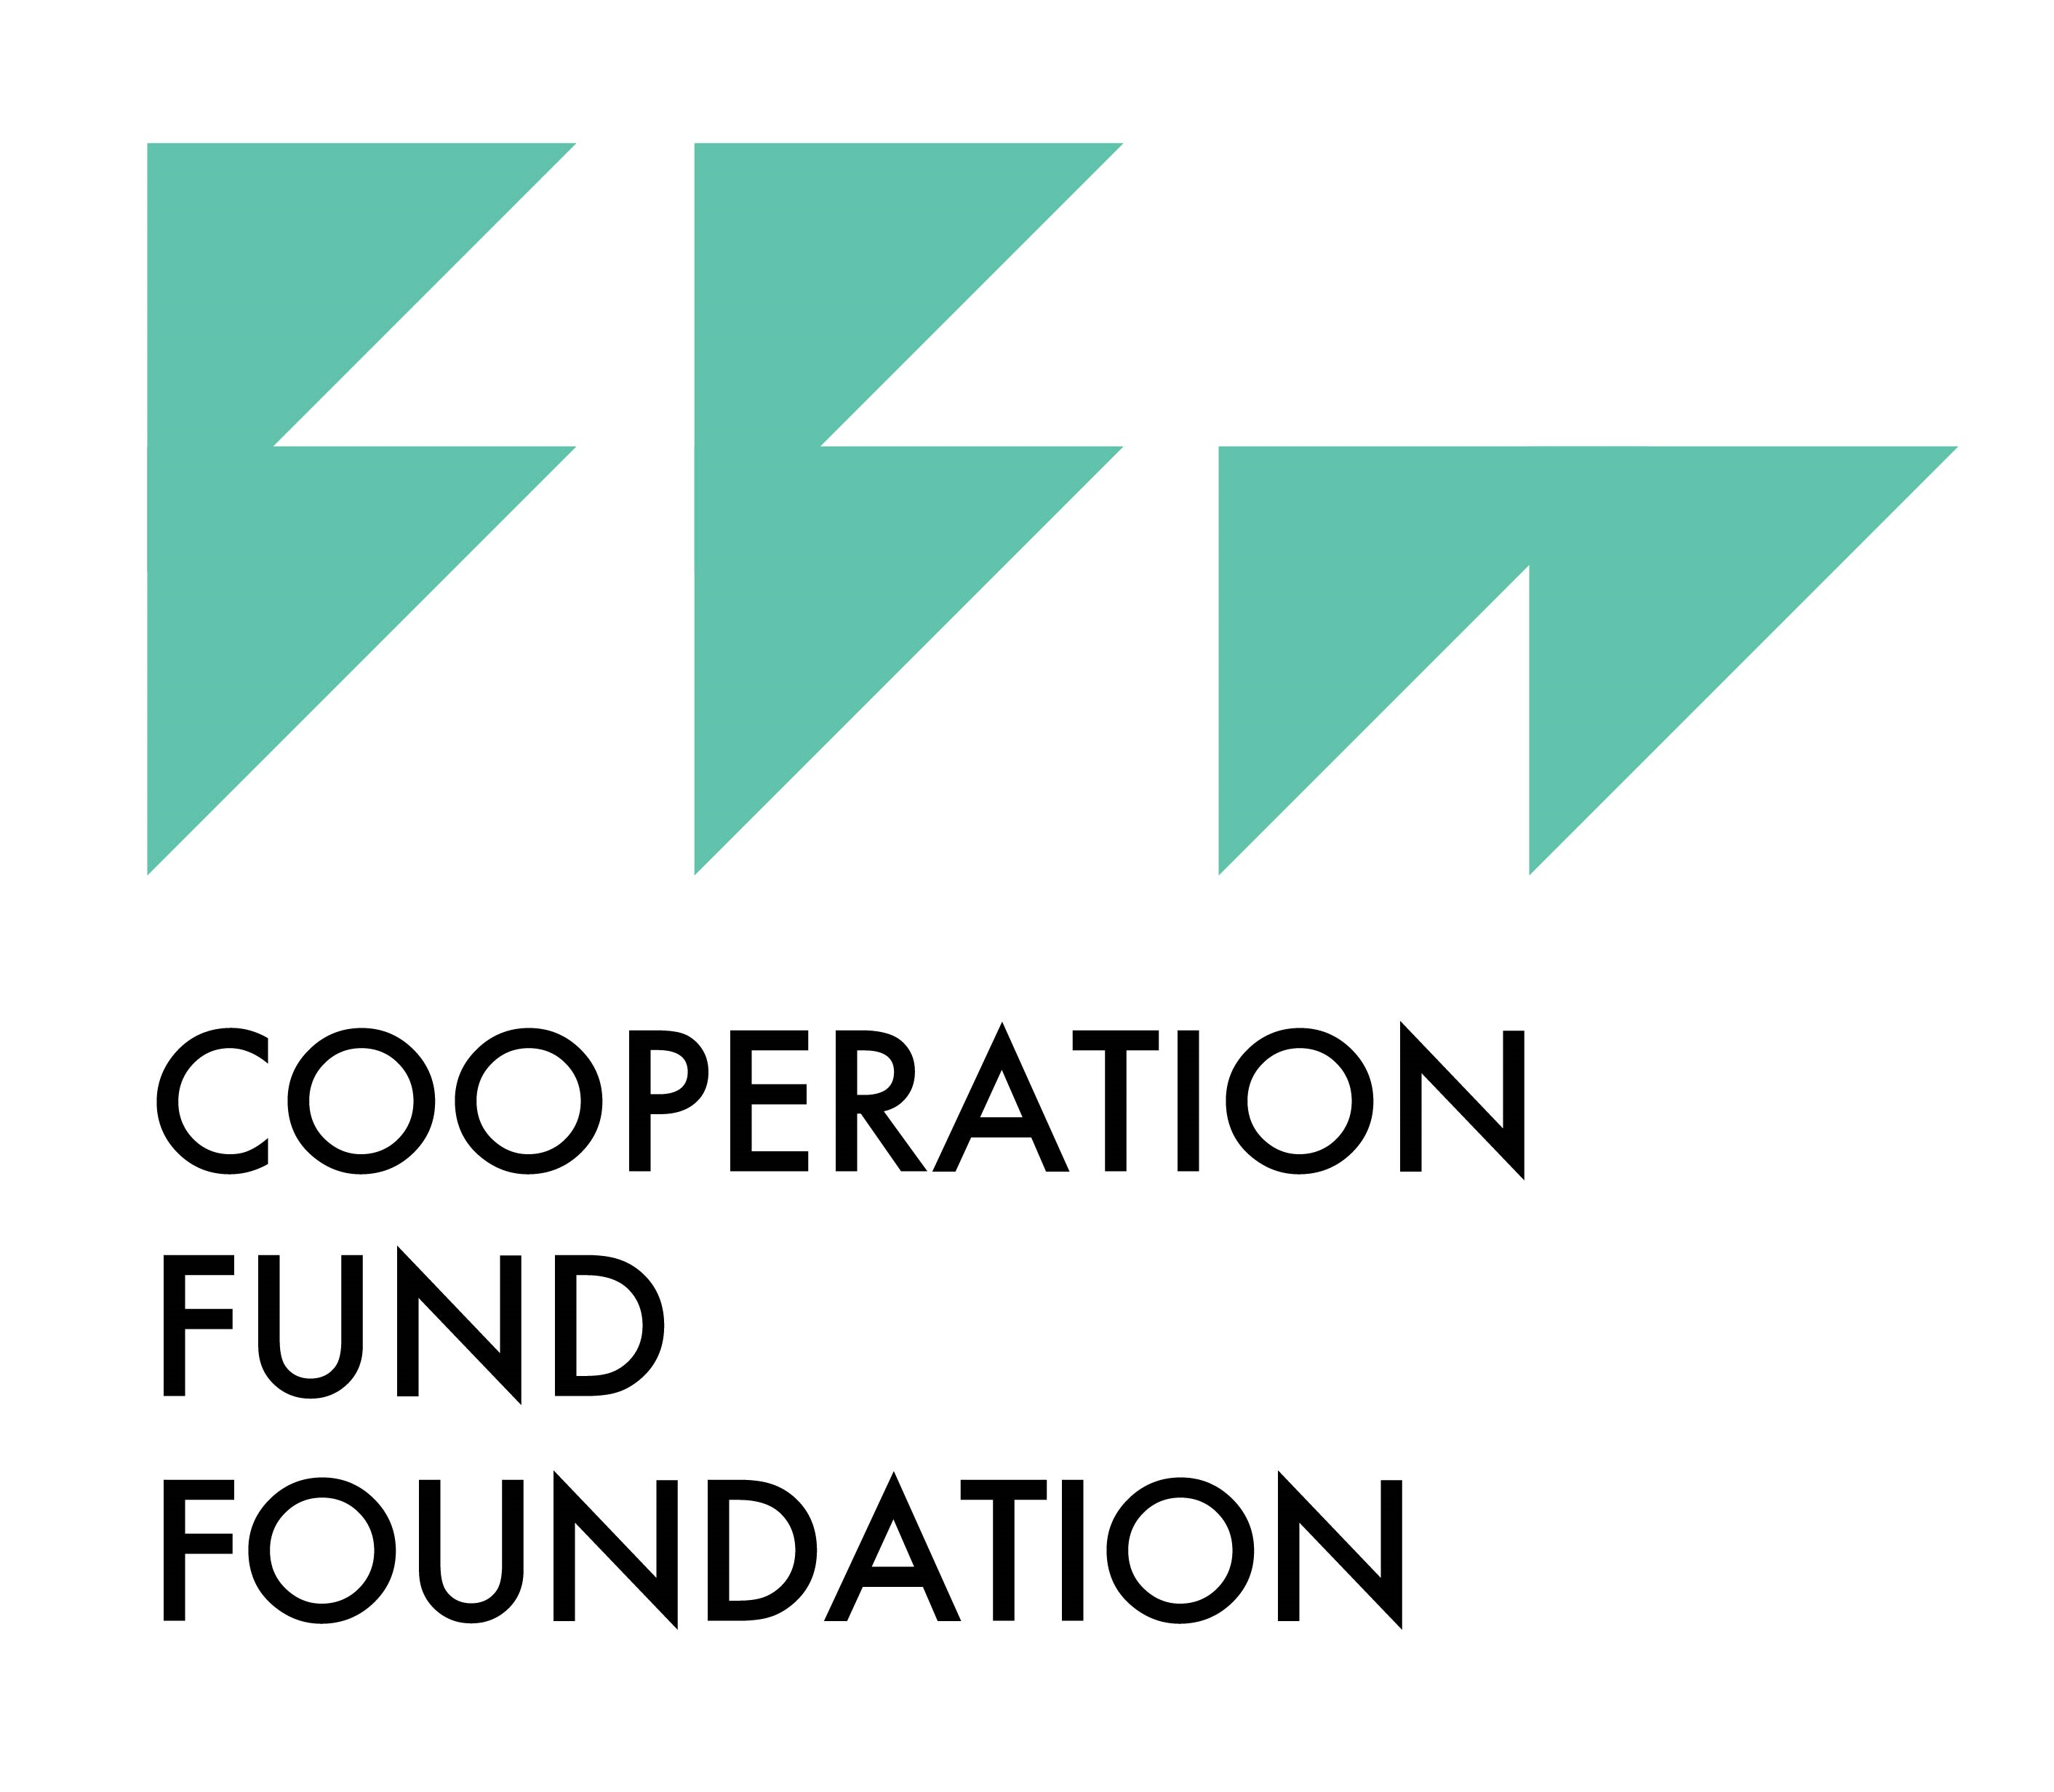 Cooperation Fund Foundation